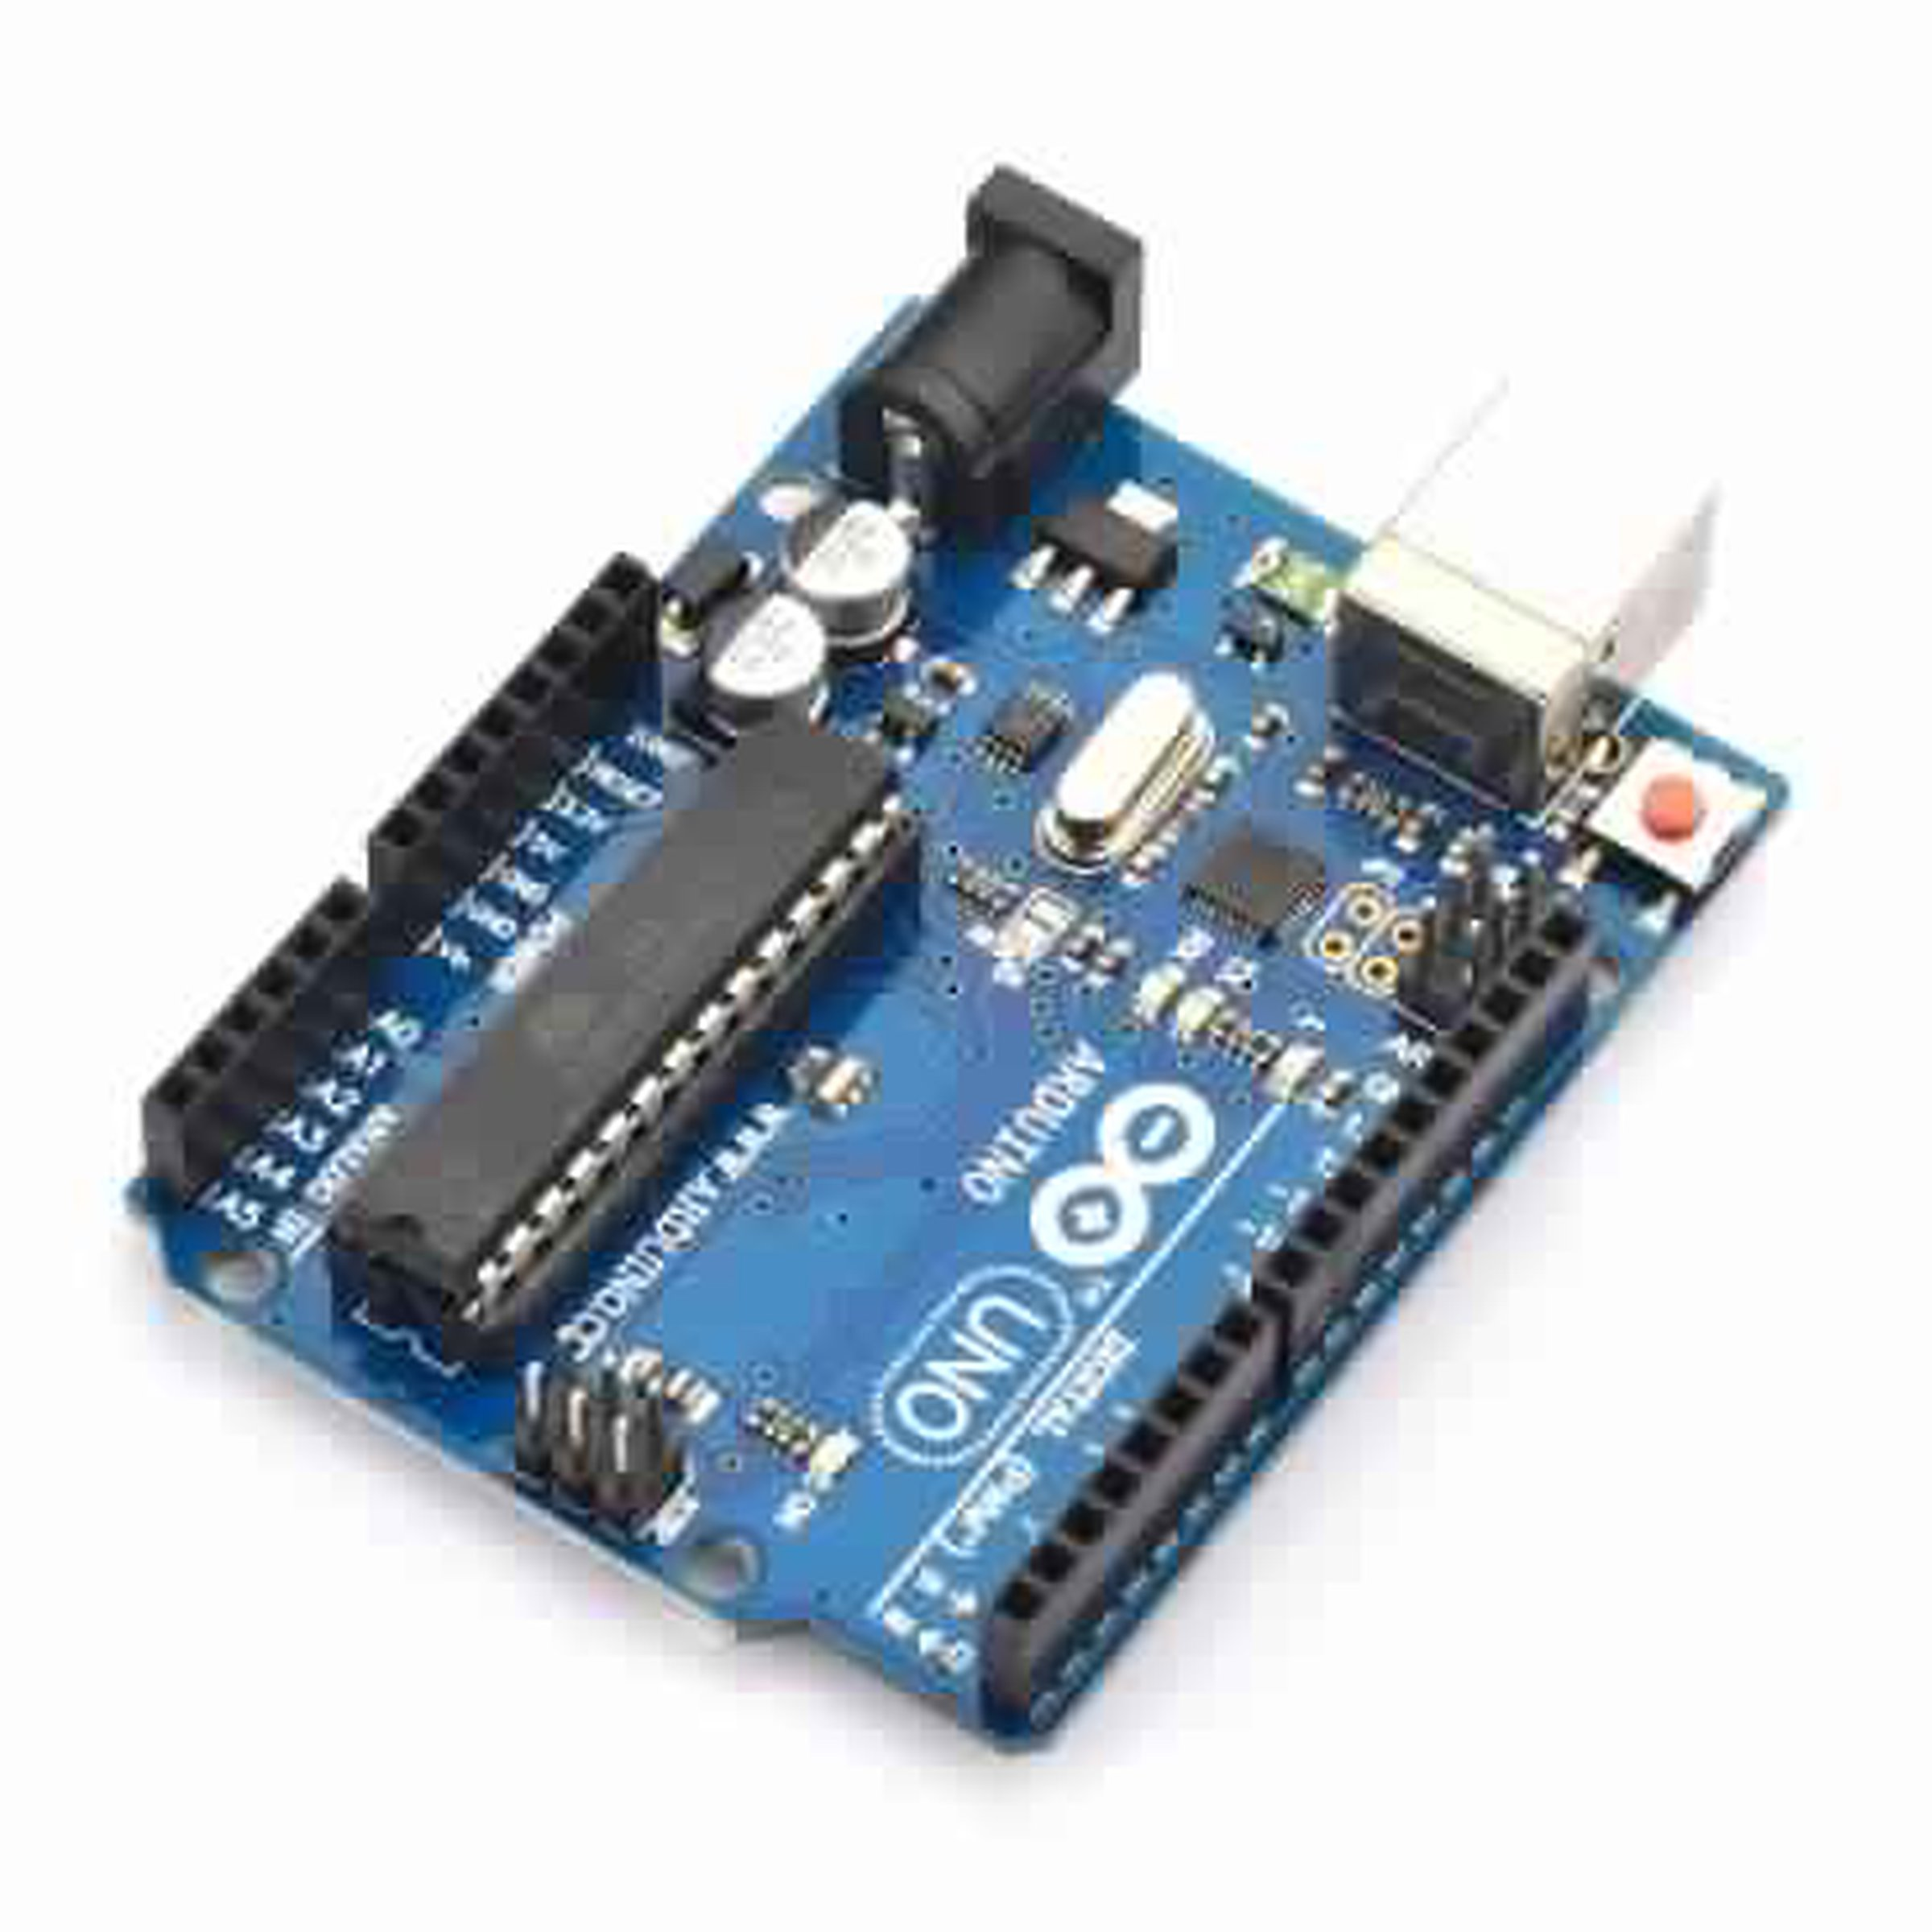 Diy basic starter kit for arduino projects from mmm on